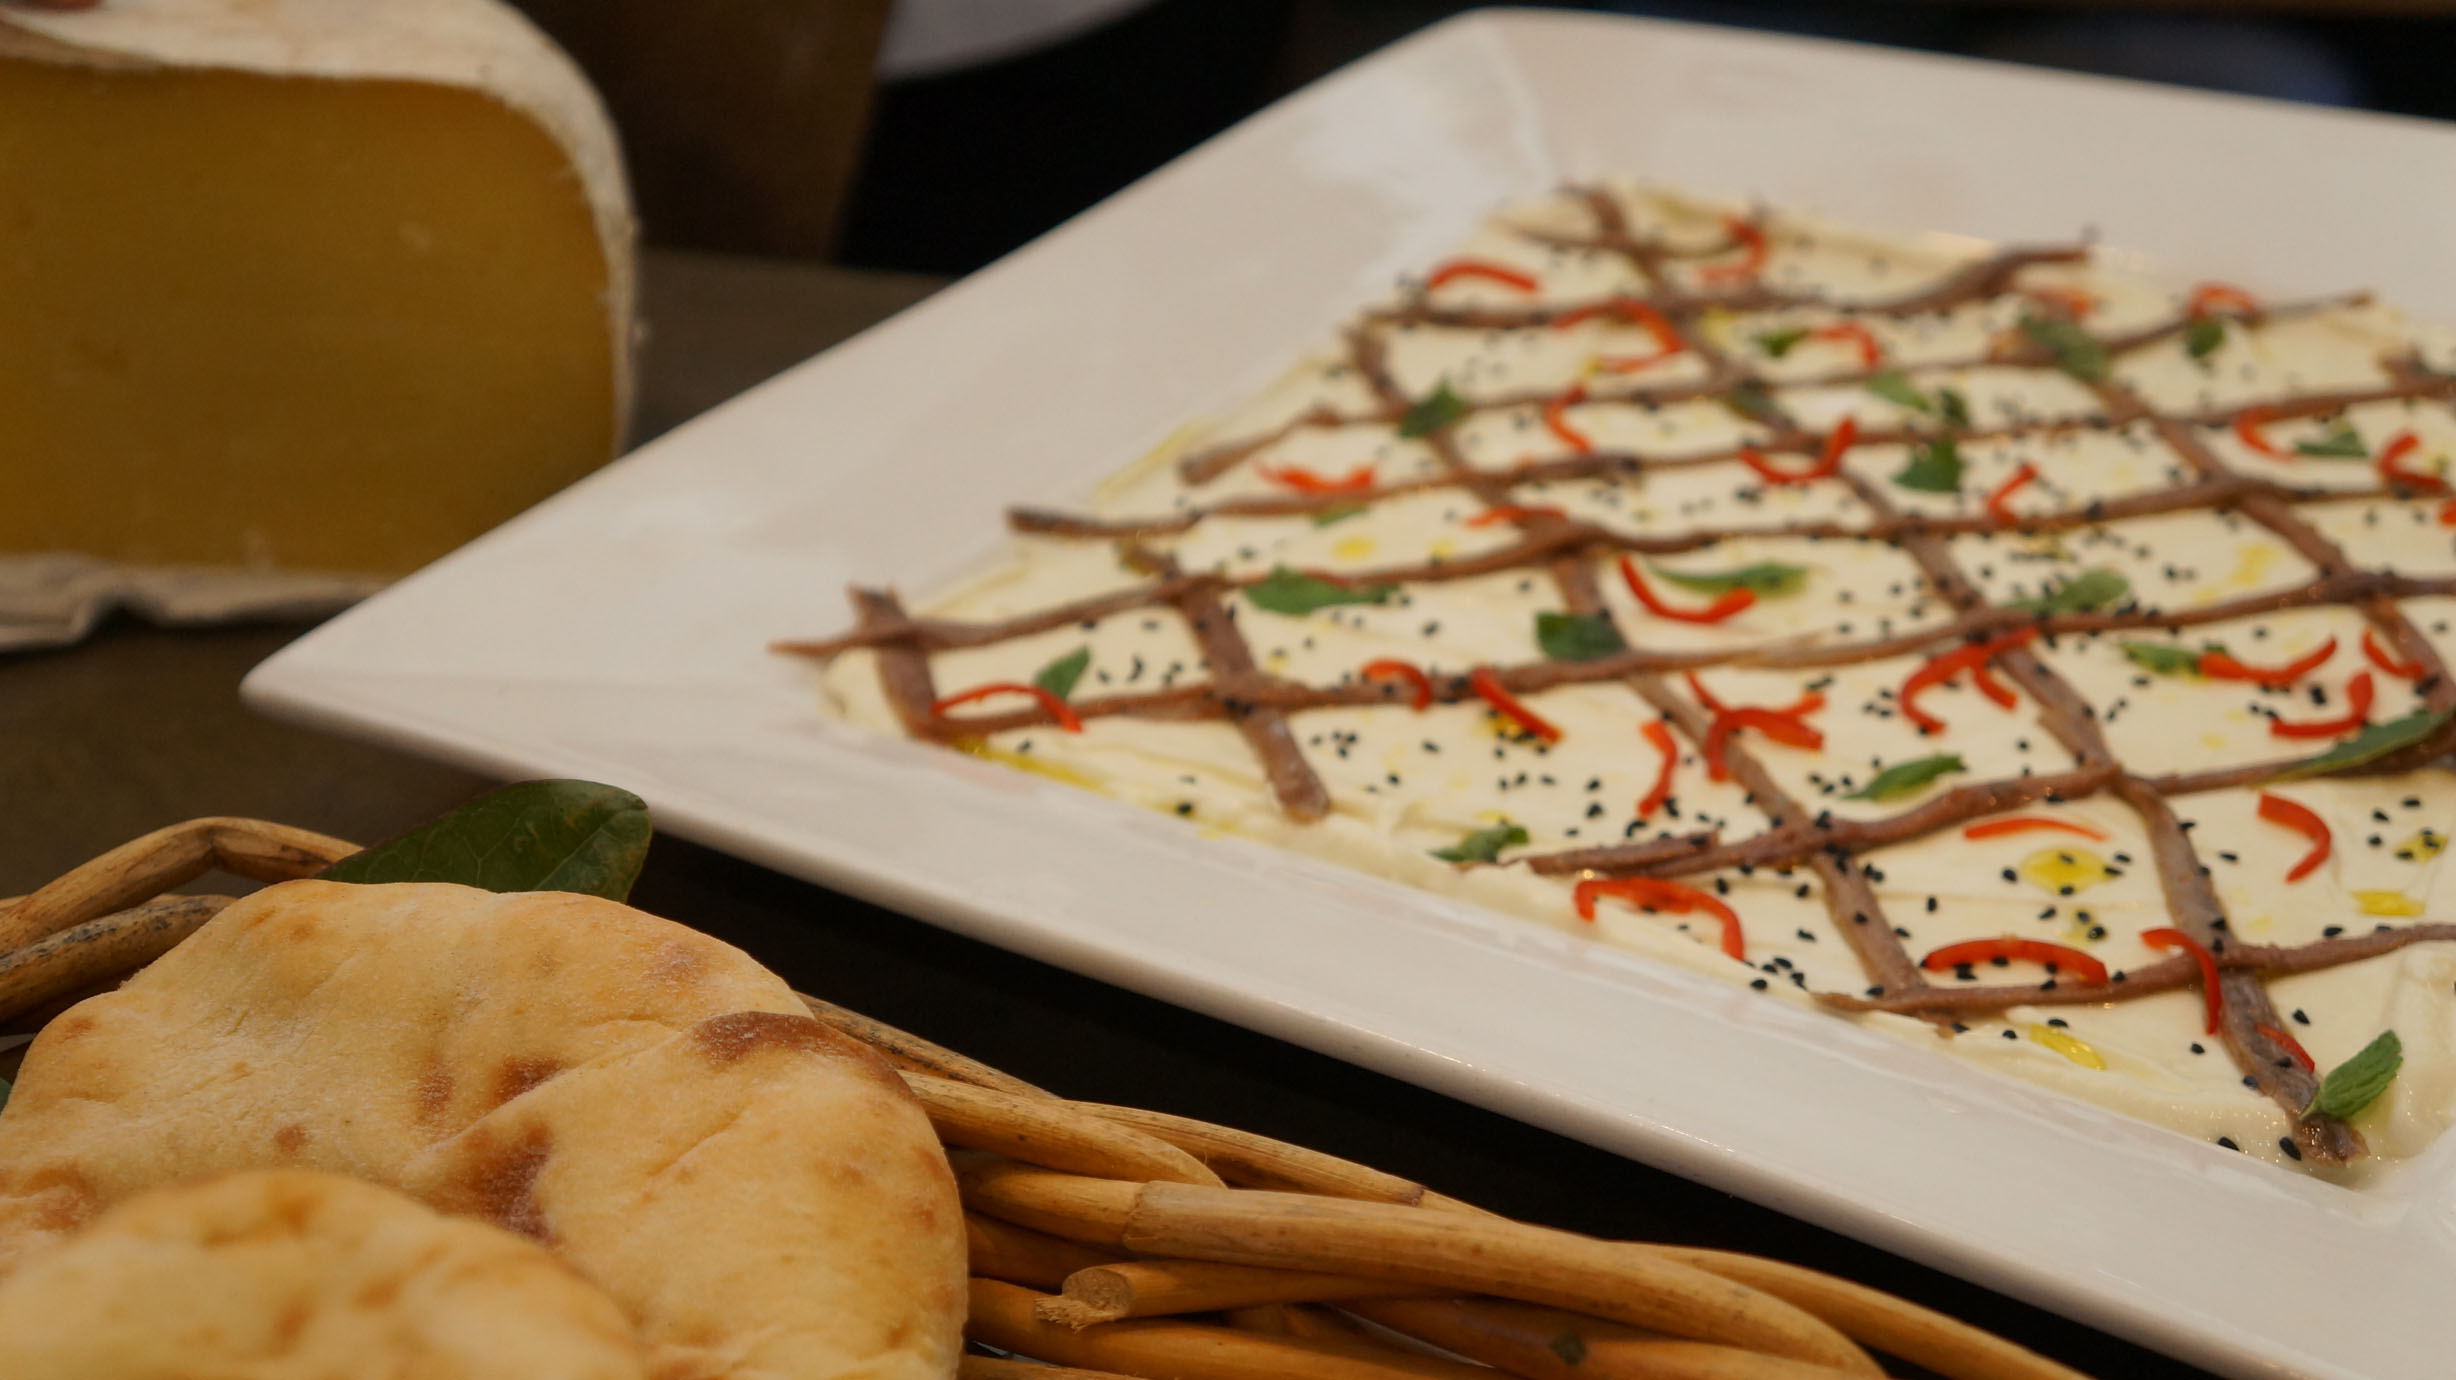 Labneh (strained yoghurt) with anchovies, chili, mint and pepper. DELISH